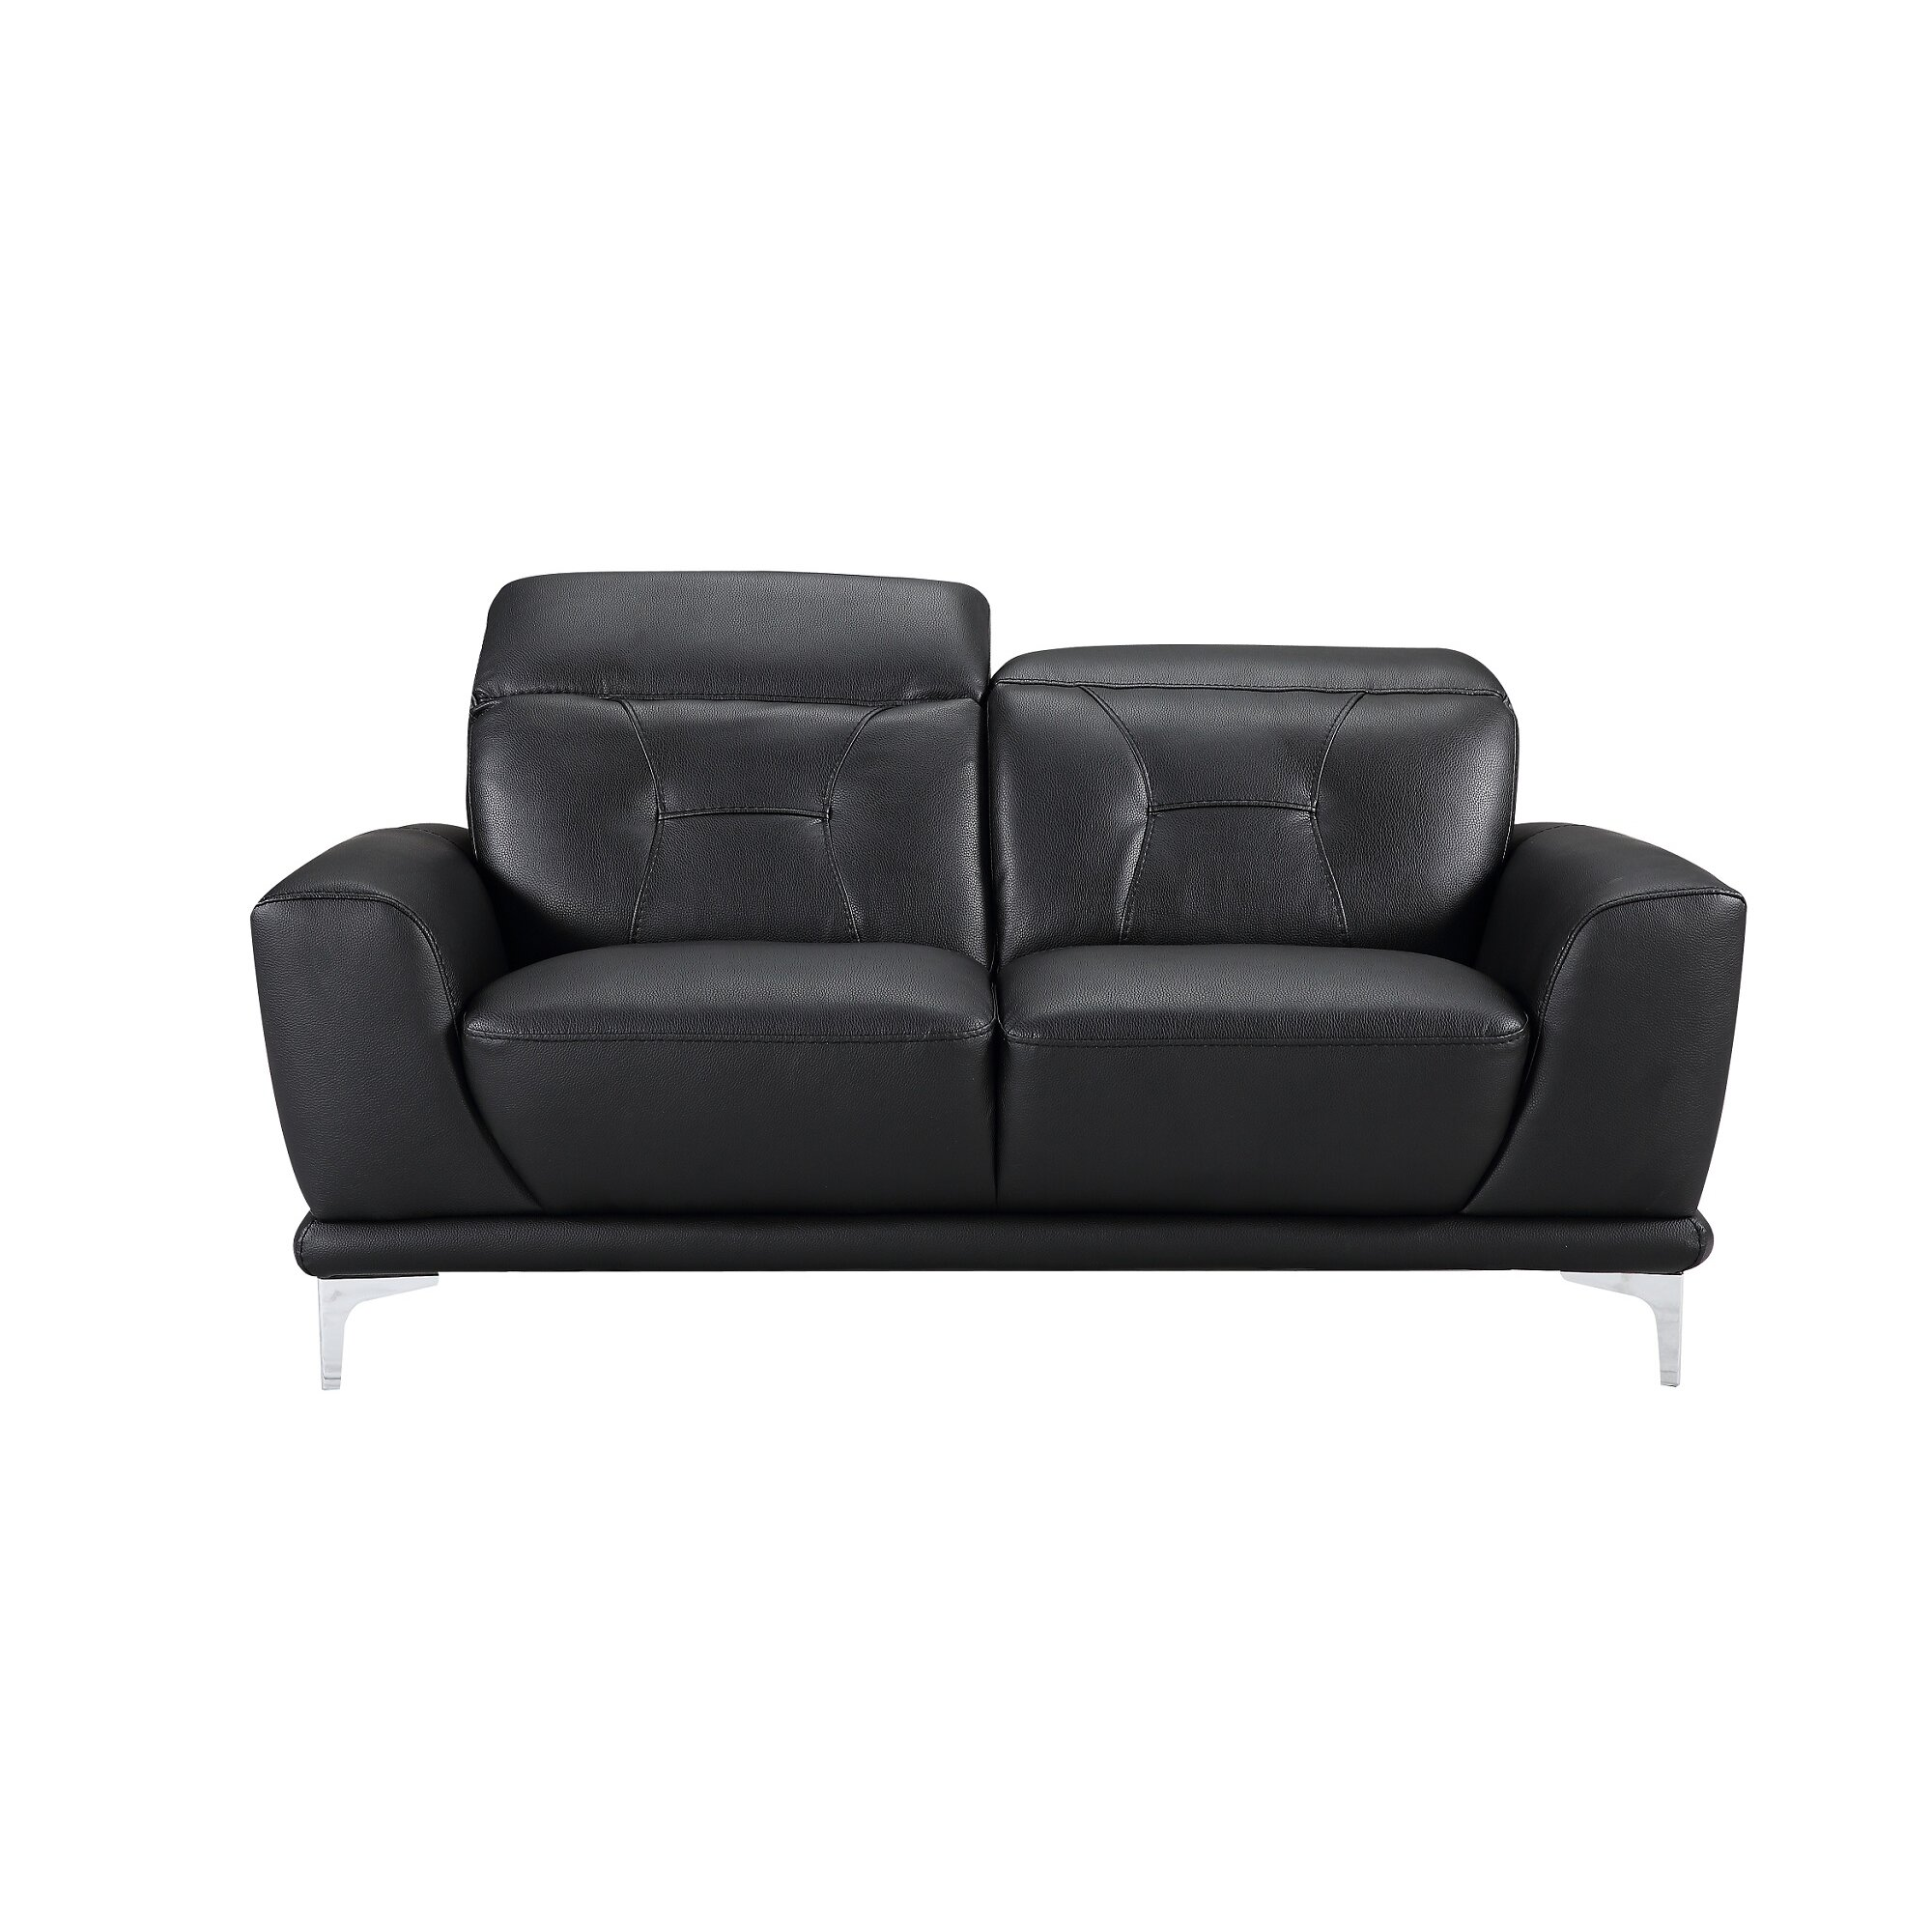 Container 3 Piece Sofa Loveseat And Chair Set Wayfair